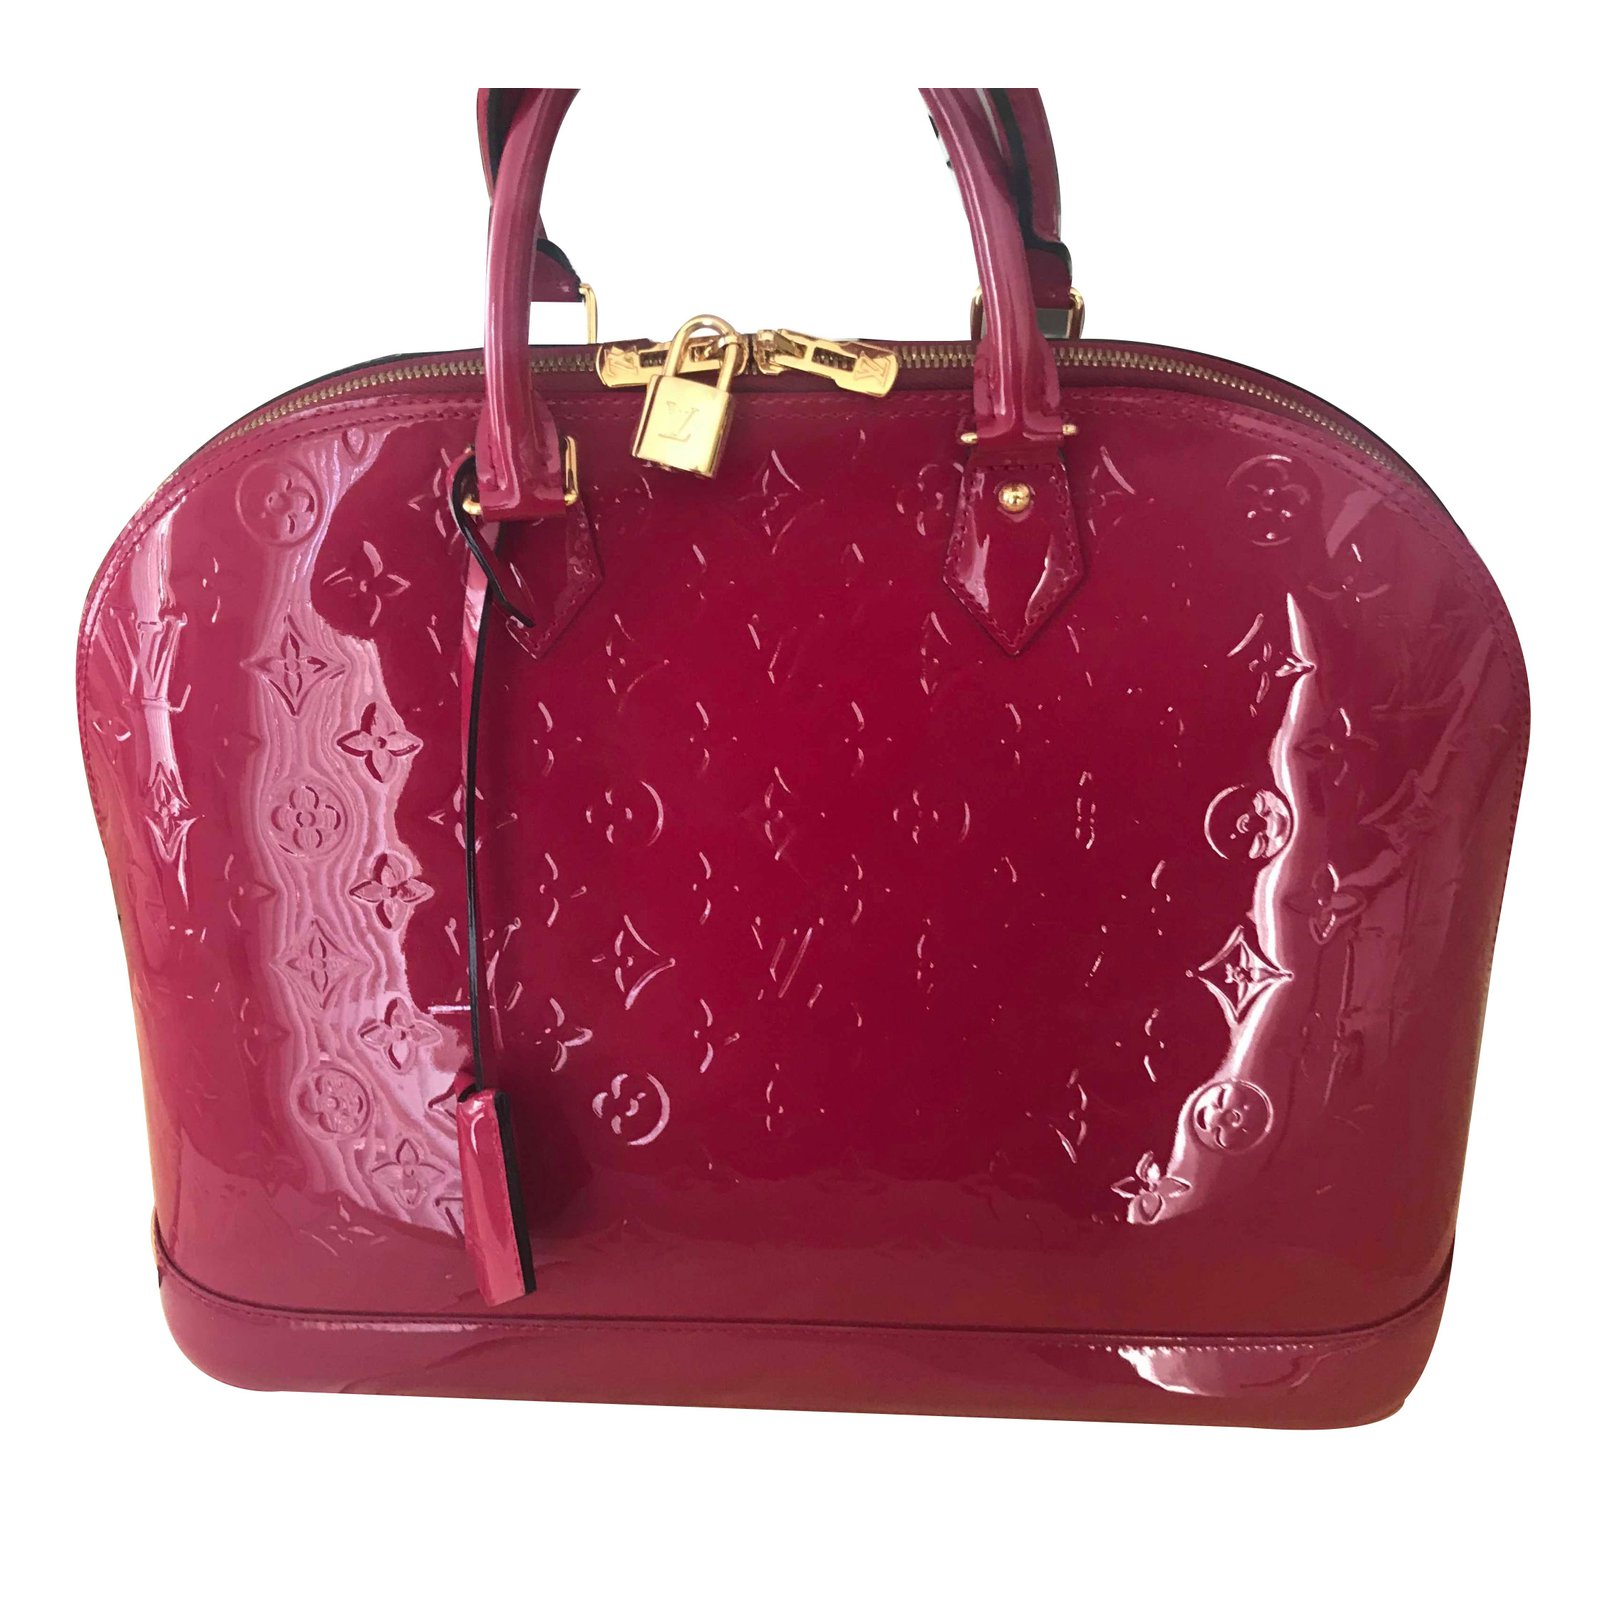 c8594681d732 Louis Vuitton Alma GM and Wallet Handbags Patent leather Pink ref.60819